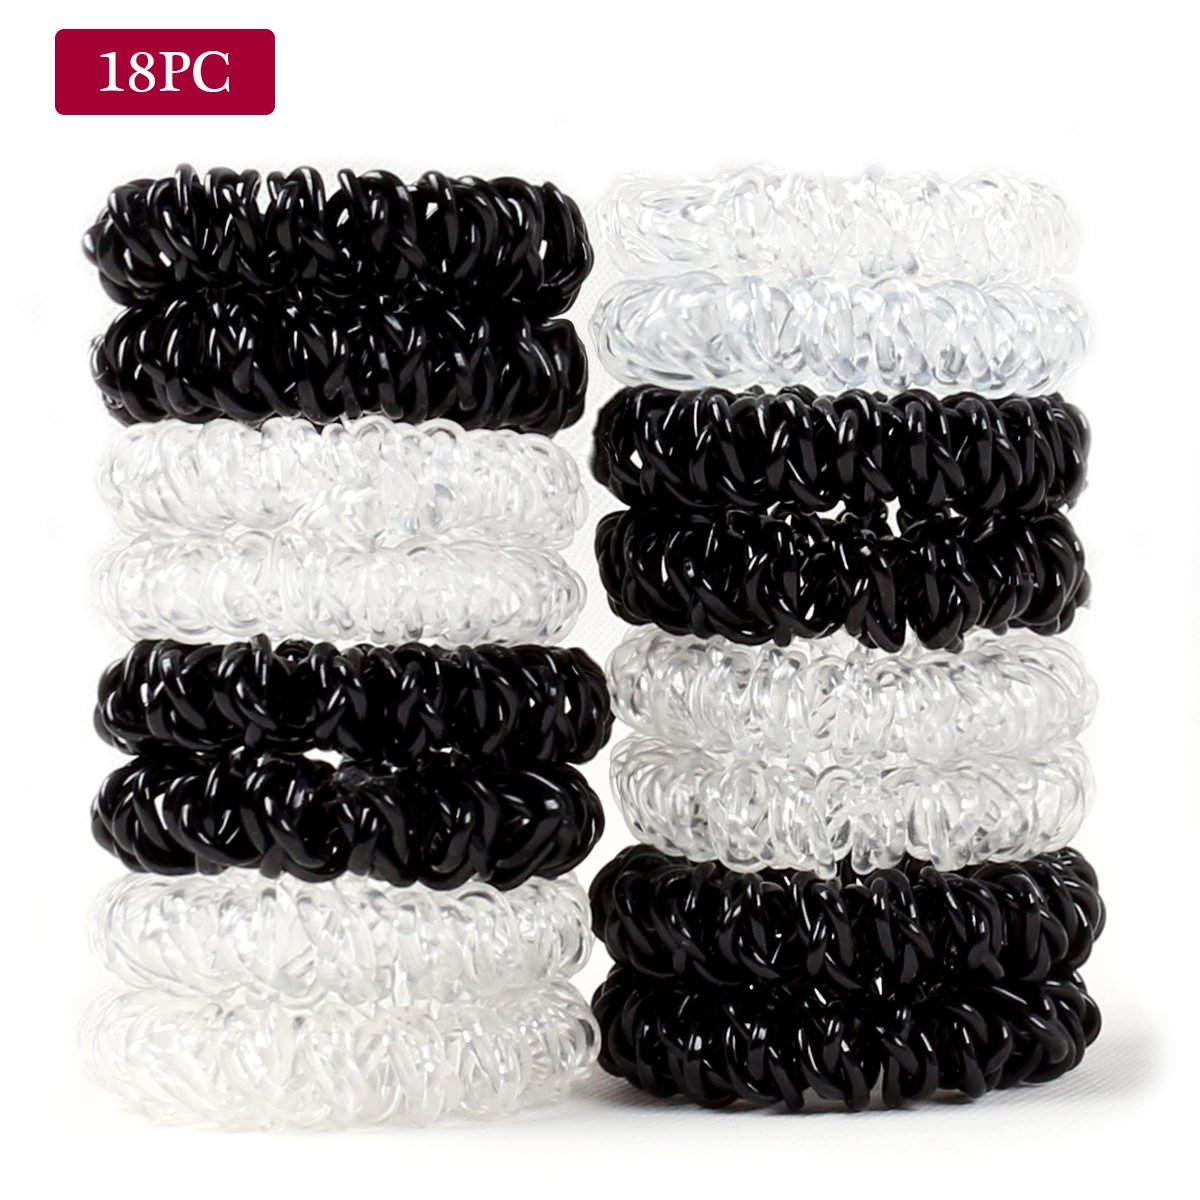 16Pcs Plastic Hair Ties Spiral Hair Ties No Crease Coil Hair Ties Ponytail Holder